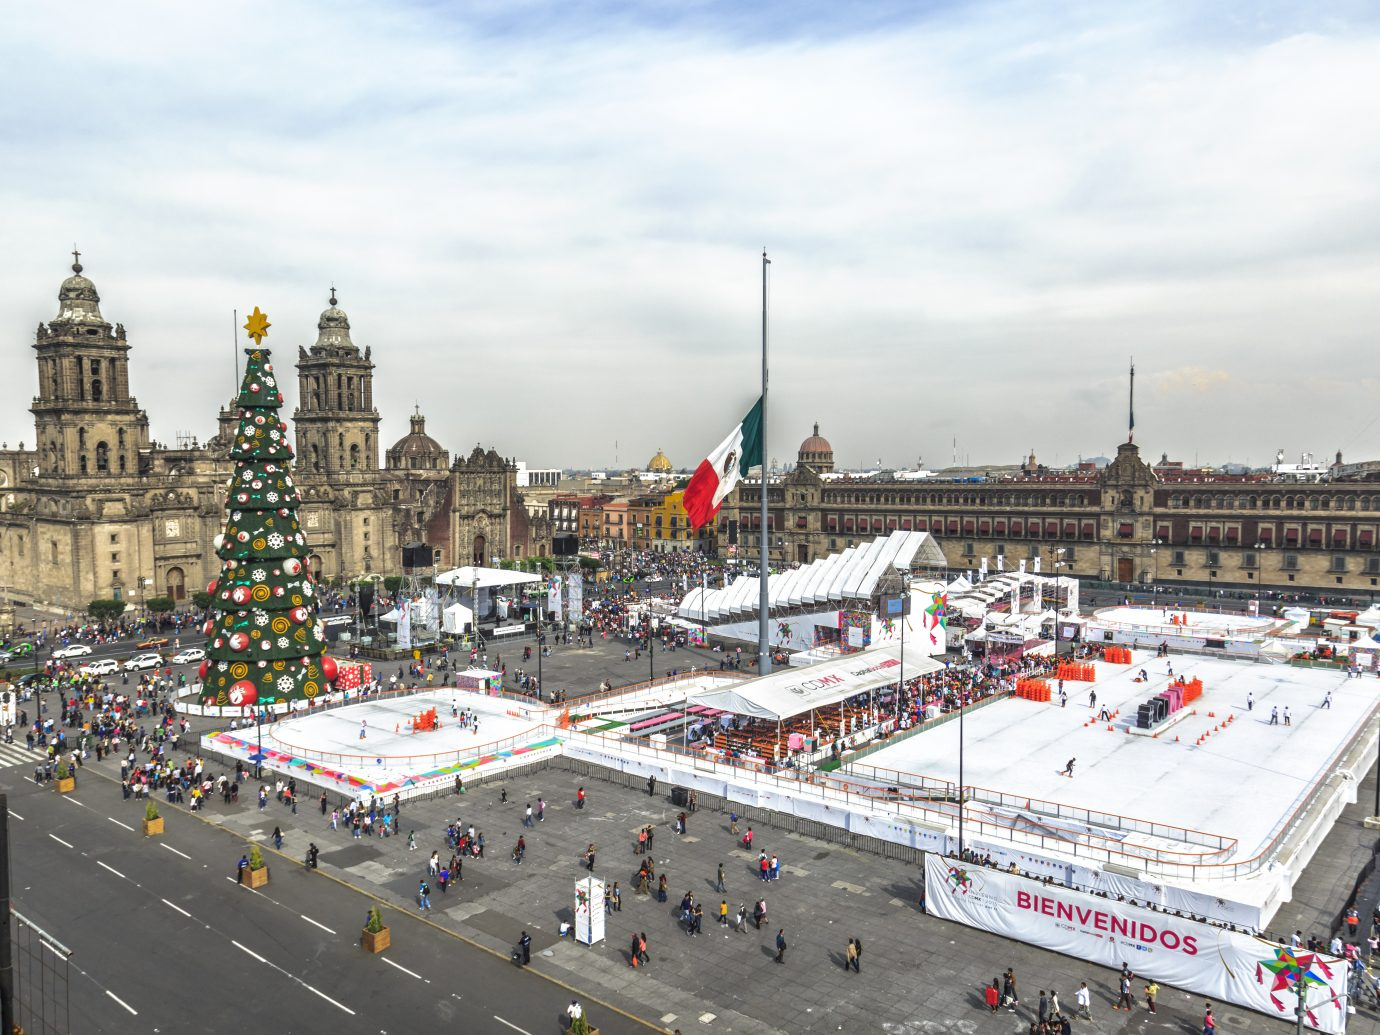 Zocalo Square decorated for Christmas in Mexico DF, in a cold december morning.